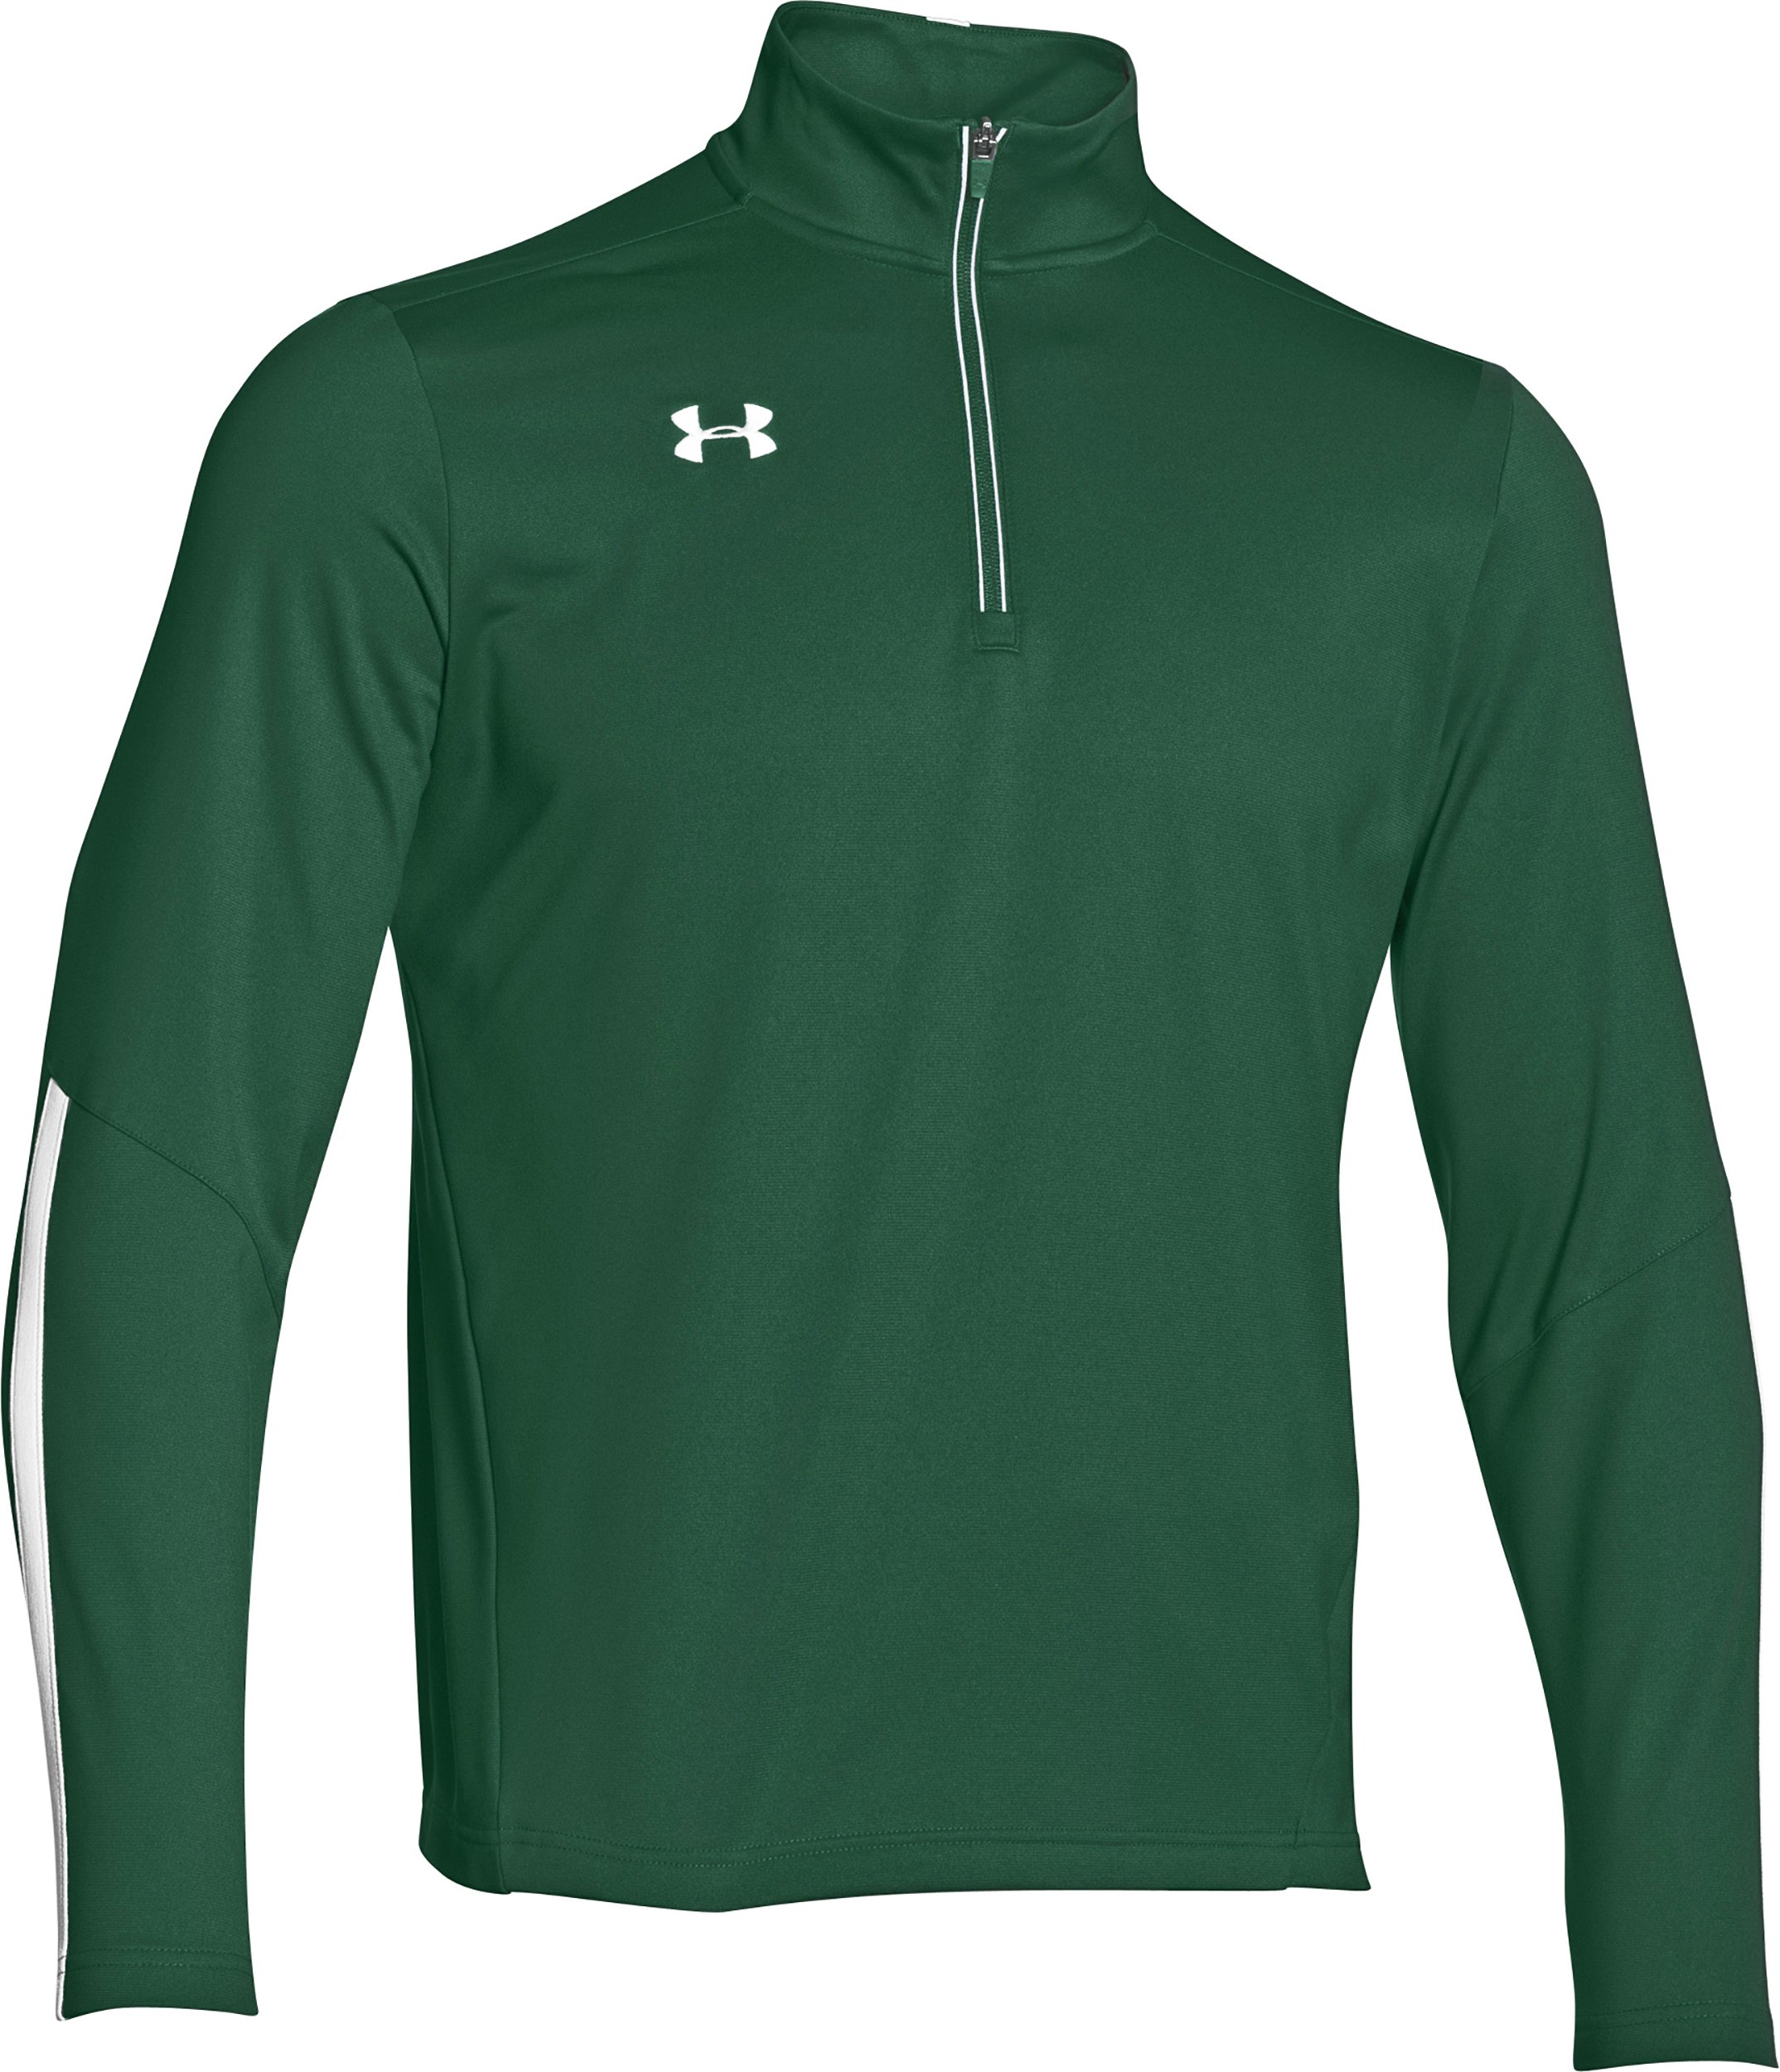 Under Armour Men's Qualifier 1/4 Zip Pullover (XX-Large, Green/White) by Under Armour